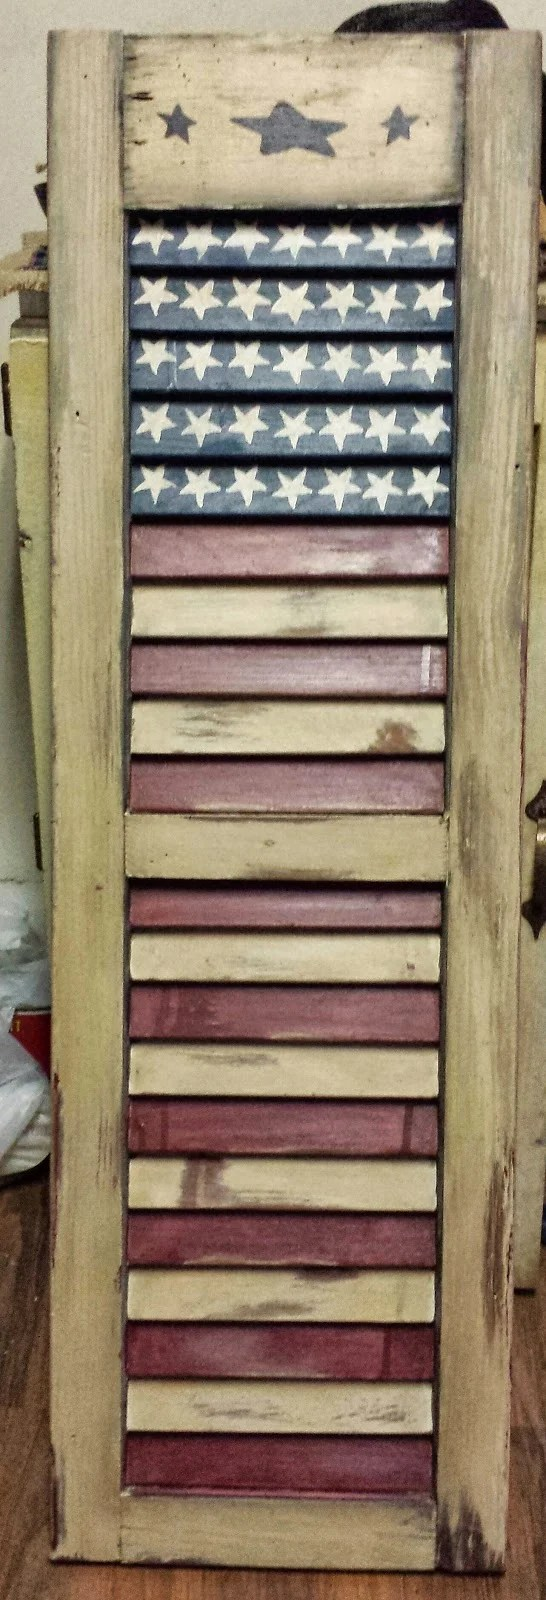 10 Ways Wooden Shutters Can Add Country Charm To Your Home